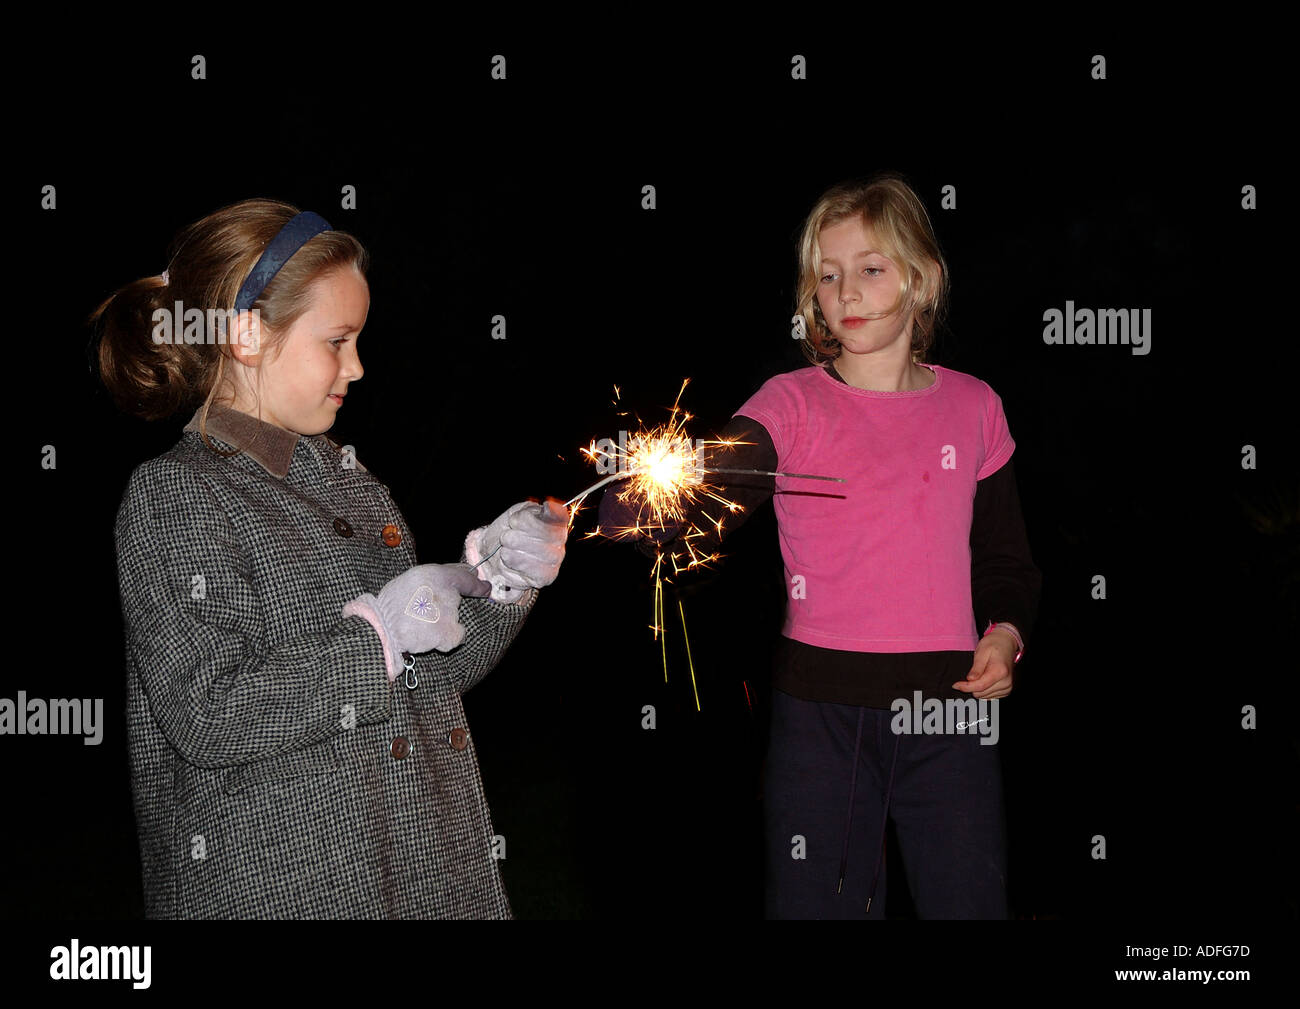 children playing with sparklers on bonfire night - Stock Image